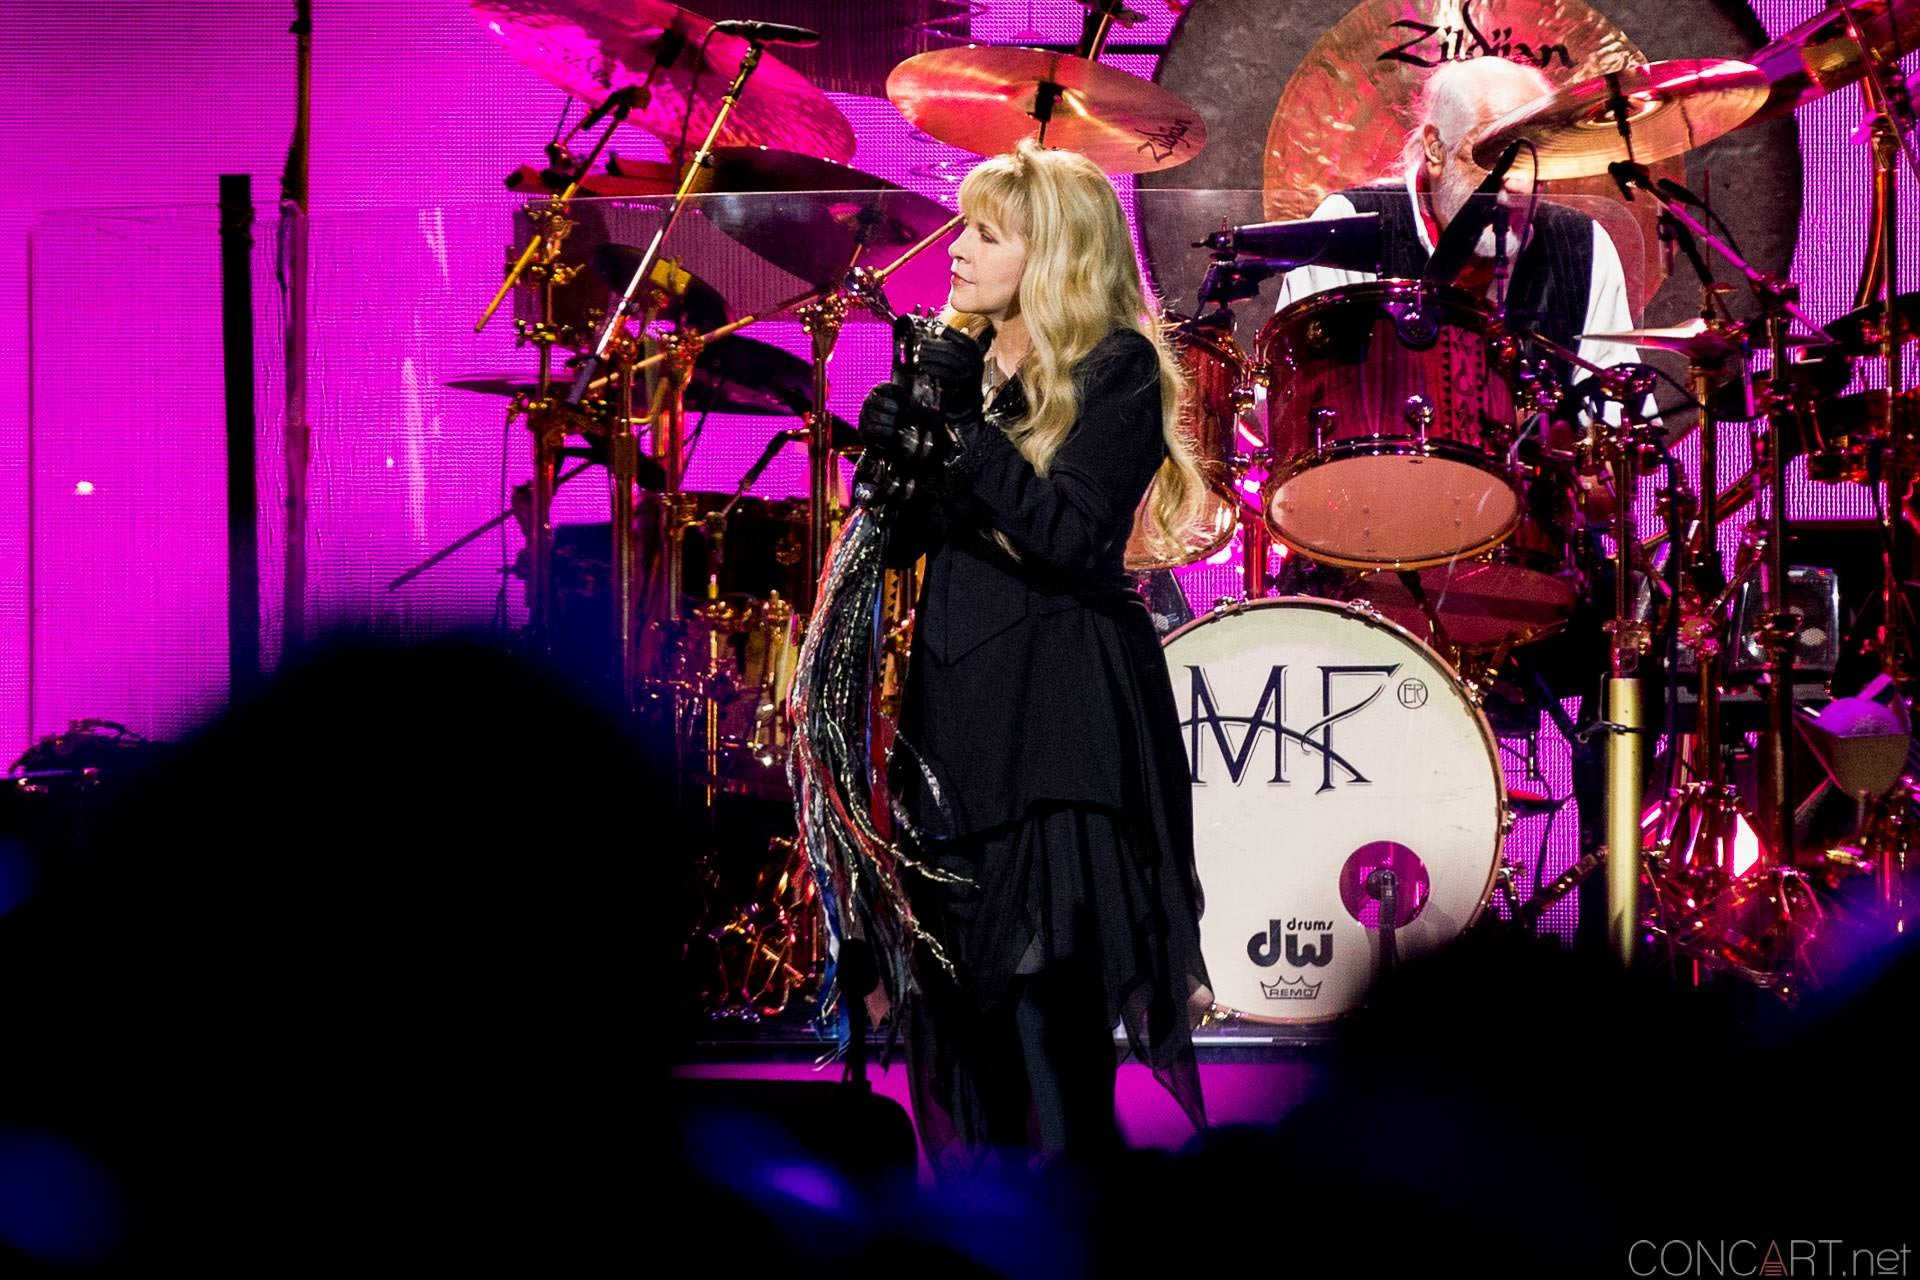 006-fleetwood-mac-live-indianapolis-bankers-life-fieldhouse-2014